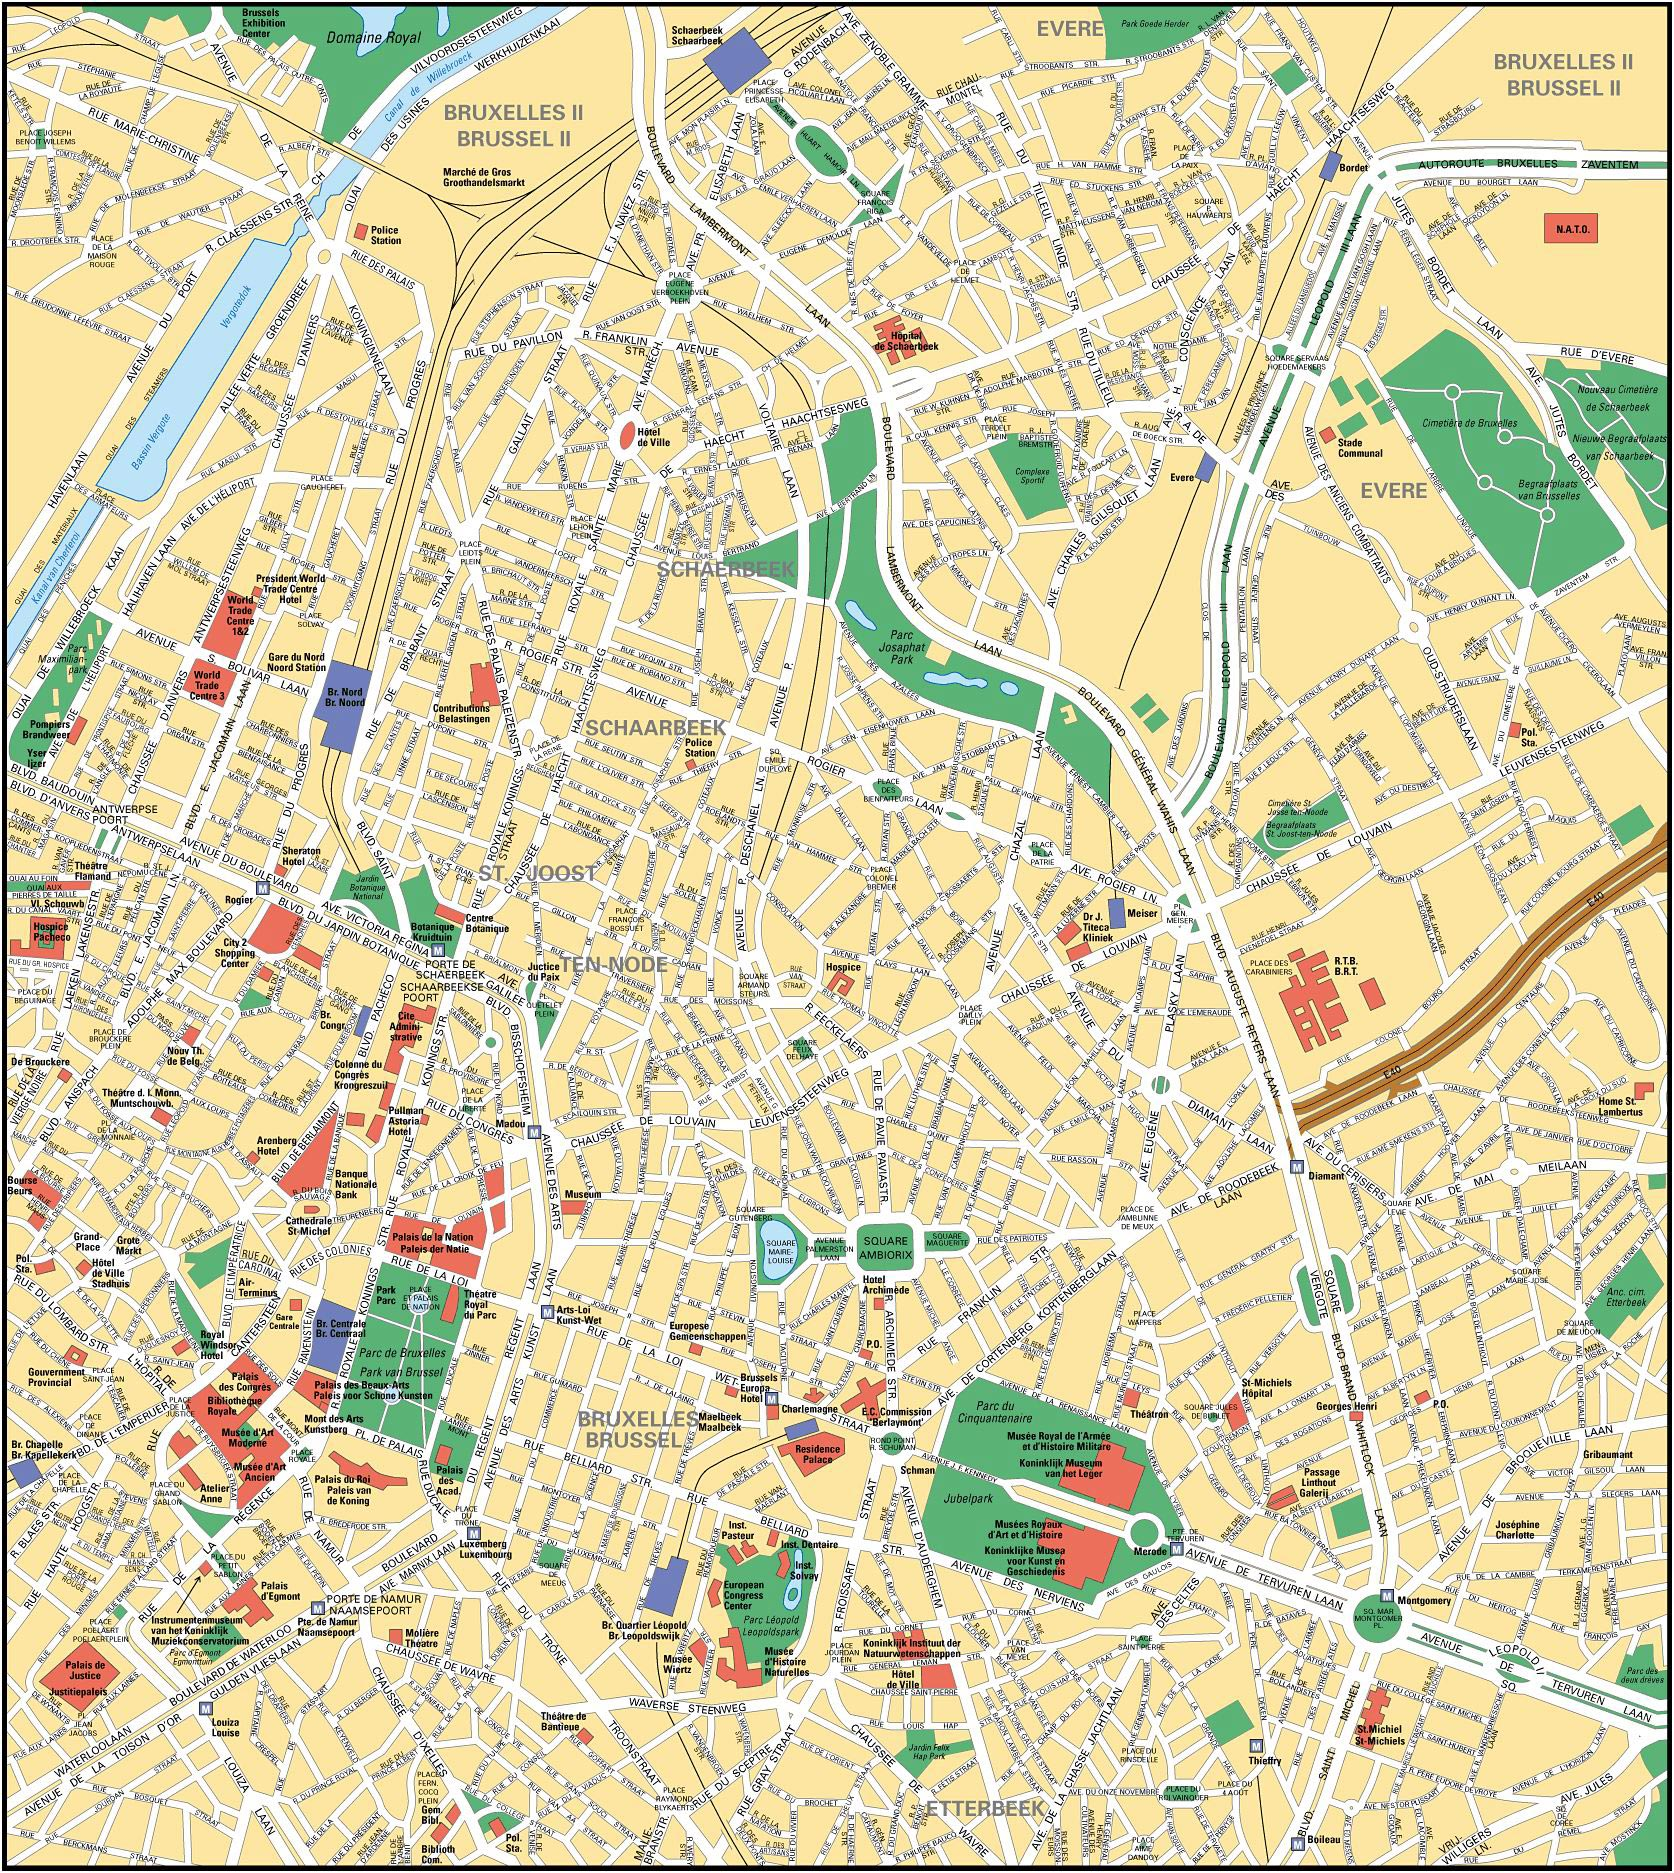 Brussels Map - Detailed City and Metro Maps of Brussels for ...